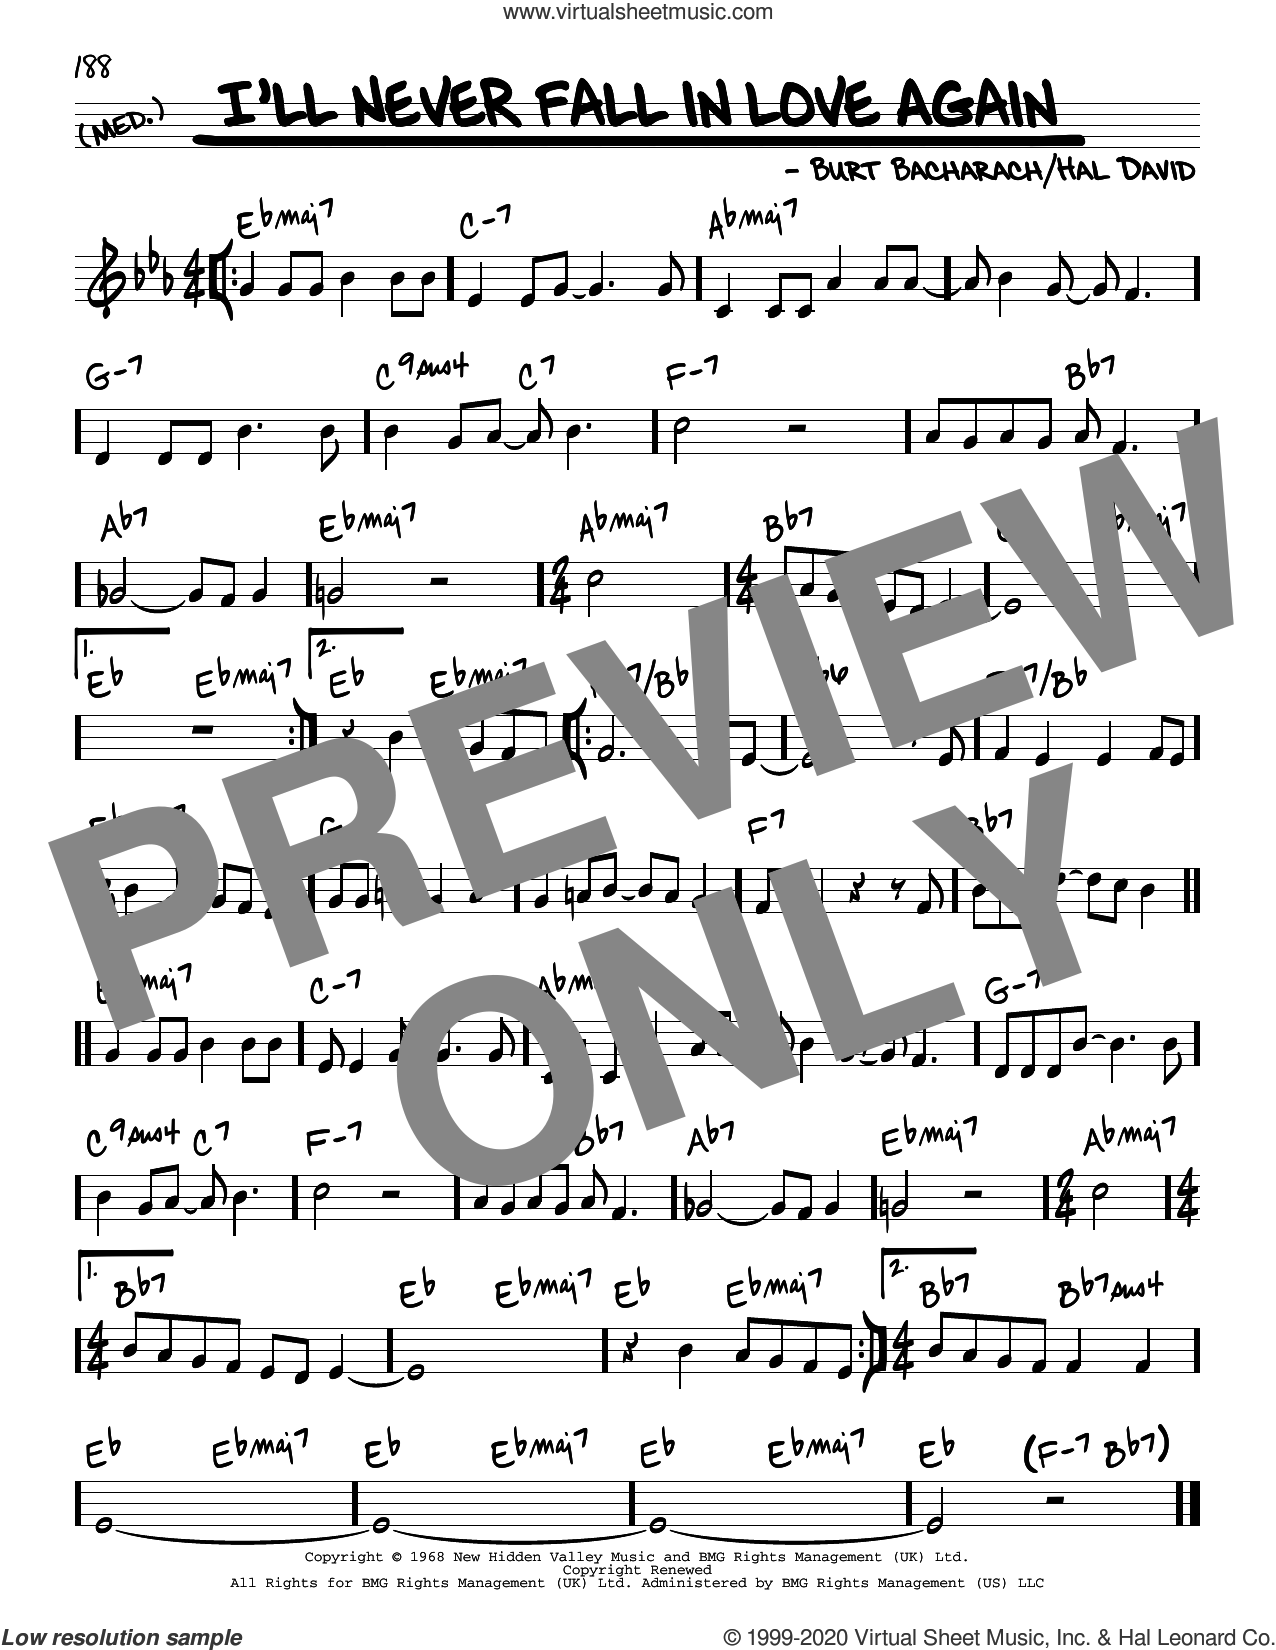 I'll Never Fall In Love Again sheet music for voice and other instruments (real book) by Dionne Warwick, Burt Bacharach and Hal David, intermediate skill level